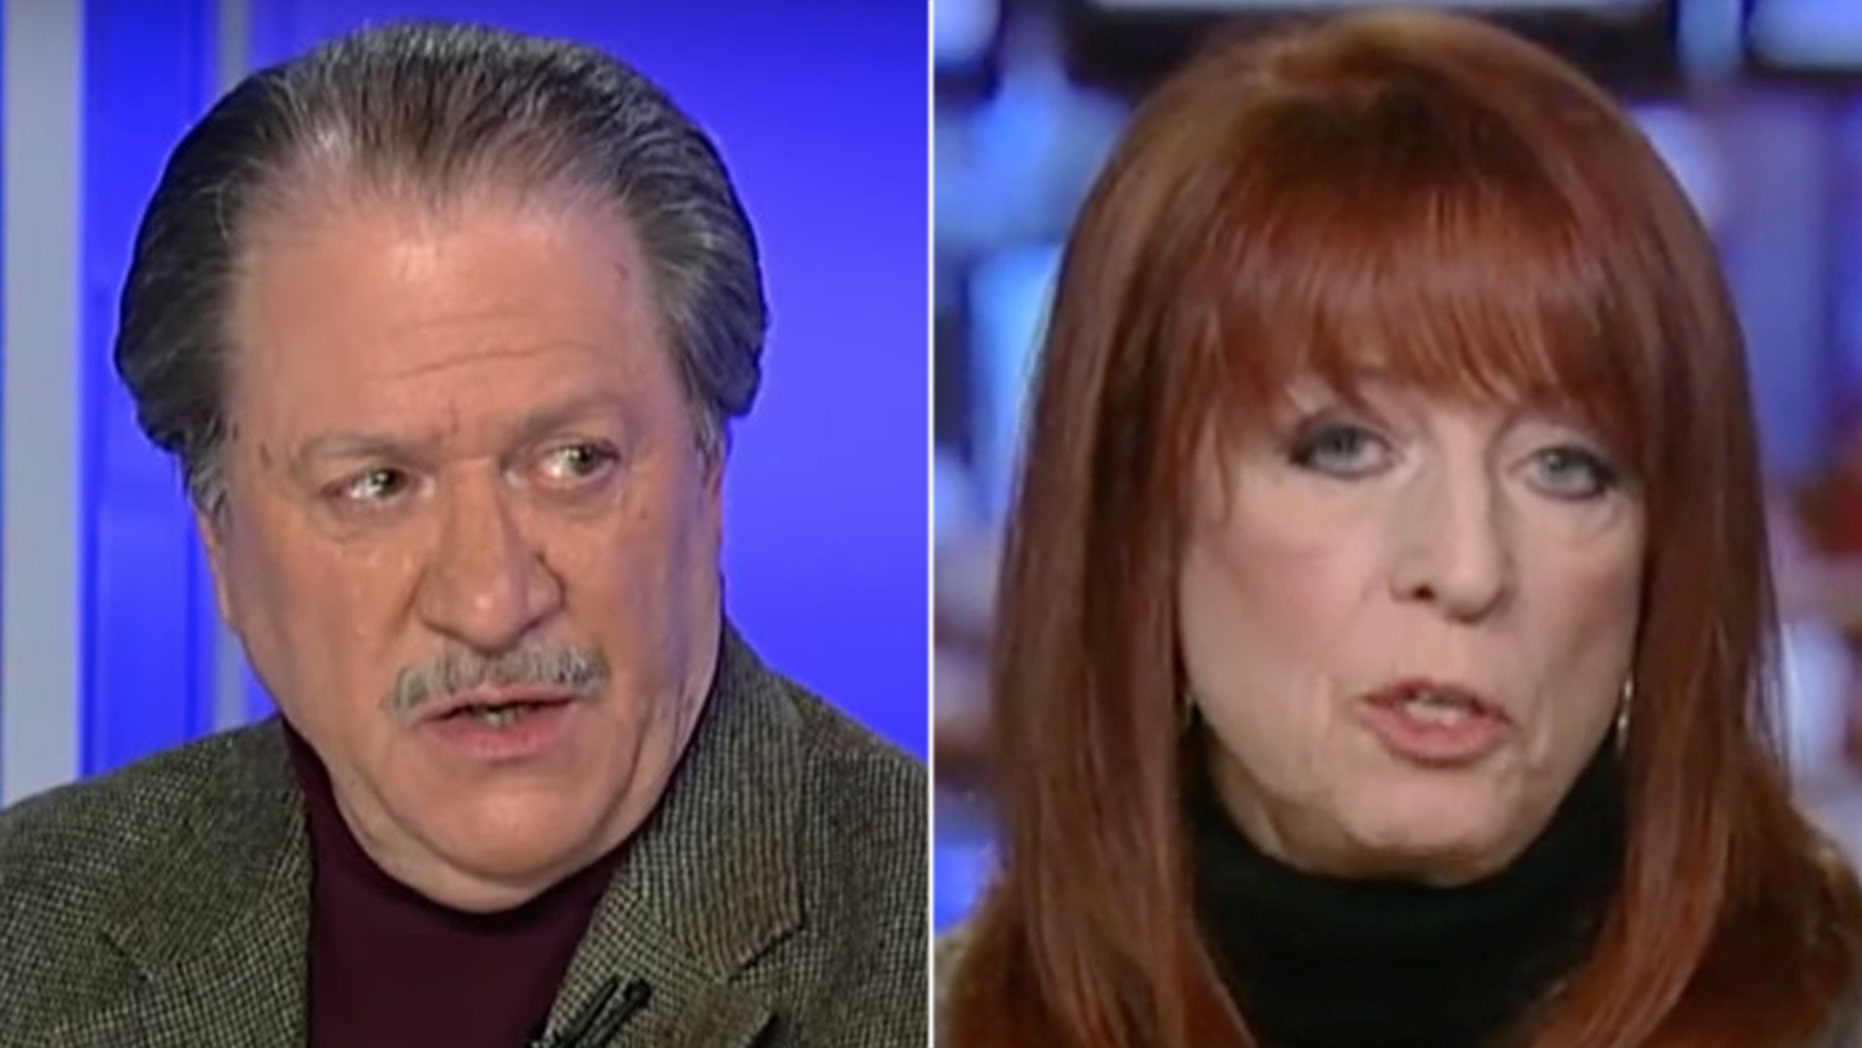 This week, the president re-assembled his outside legal team—hiring husband and wife law partners Joseph diGenova and Victoria Toensing to represent him.